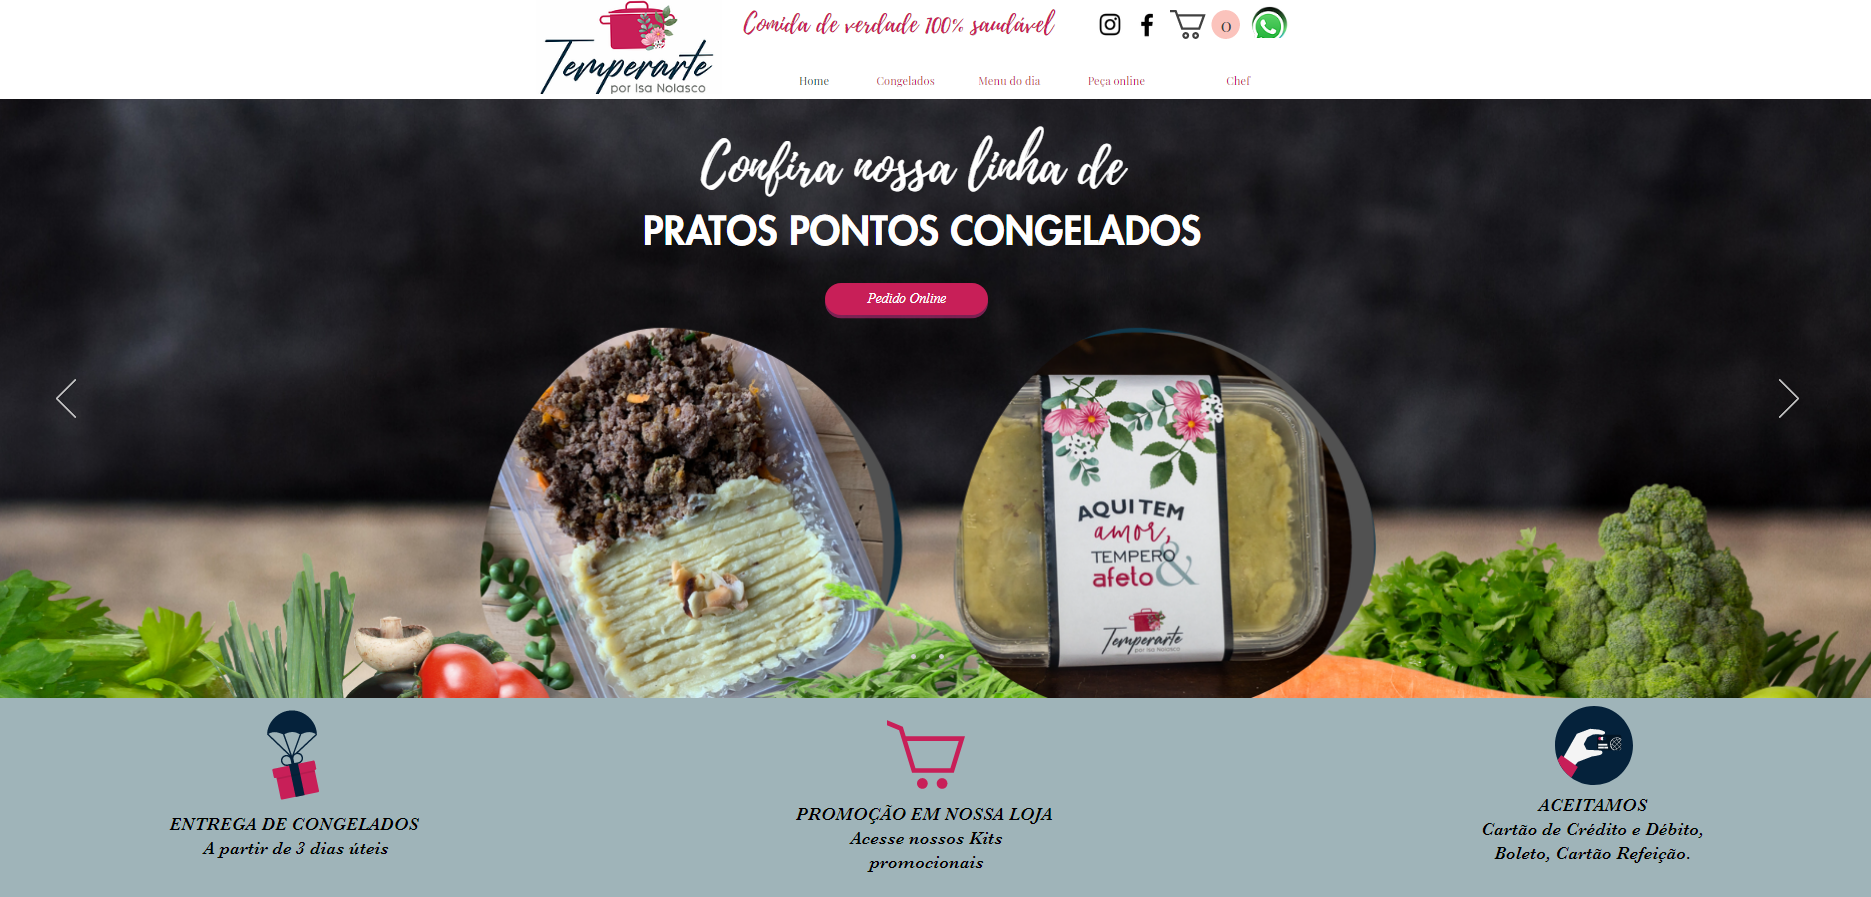 LOJA VIRTUAL ECOMMERCE TEMPERARTE DESENV